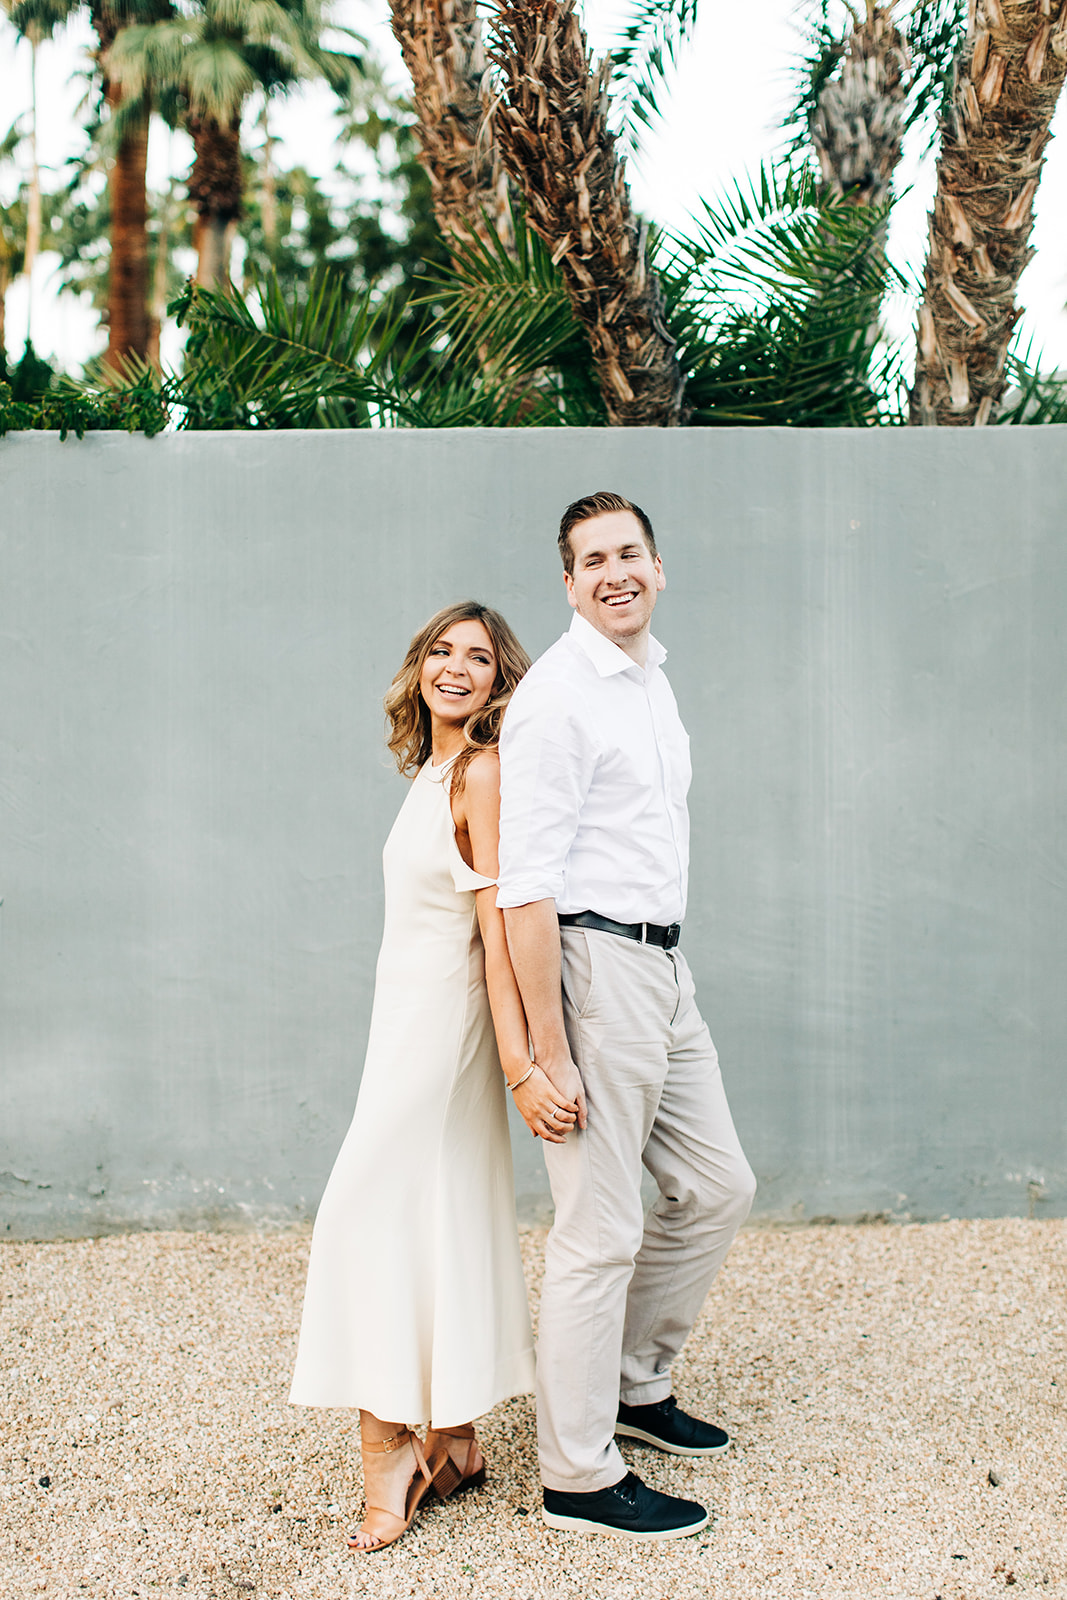 Paulina-Drew_Palm-Springs-Engagement-Photos_Clarisse-Rae_Southern-California-Wedding-Photographer-32